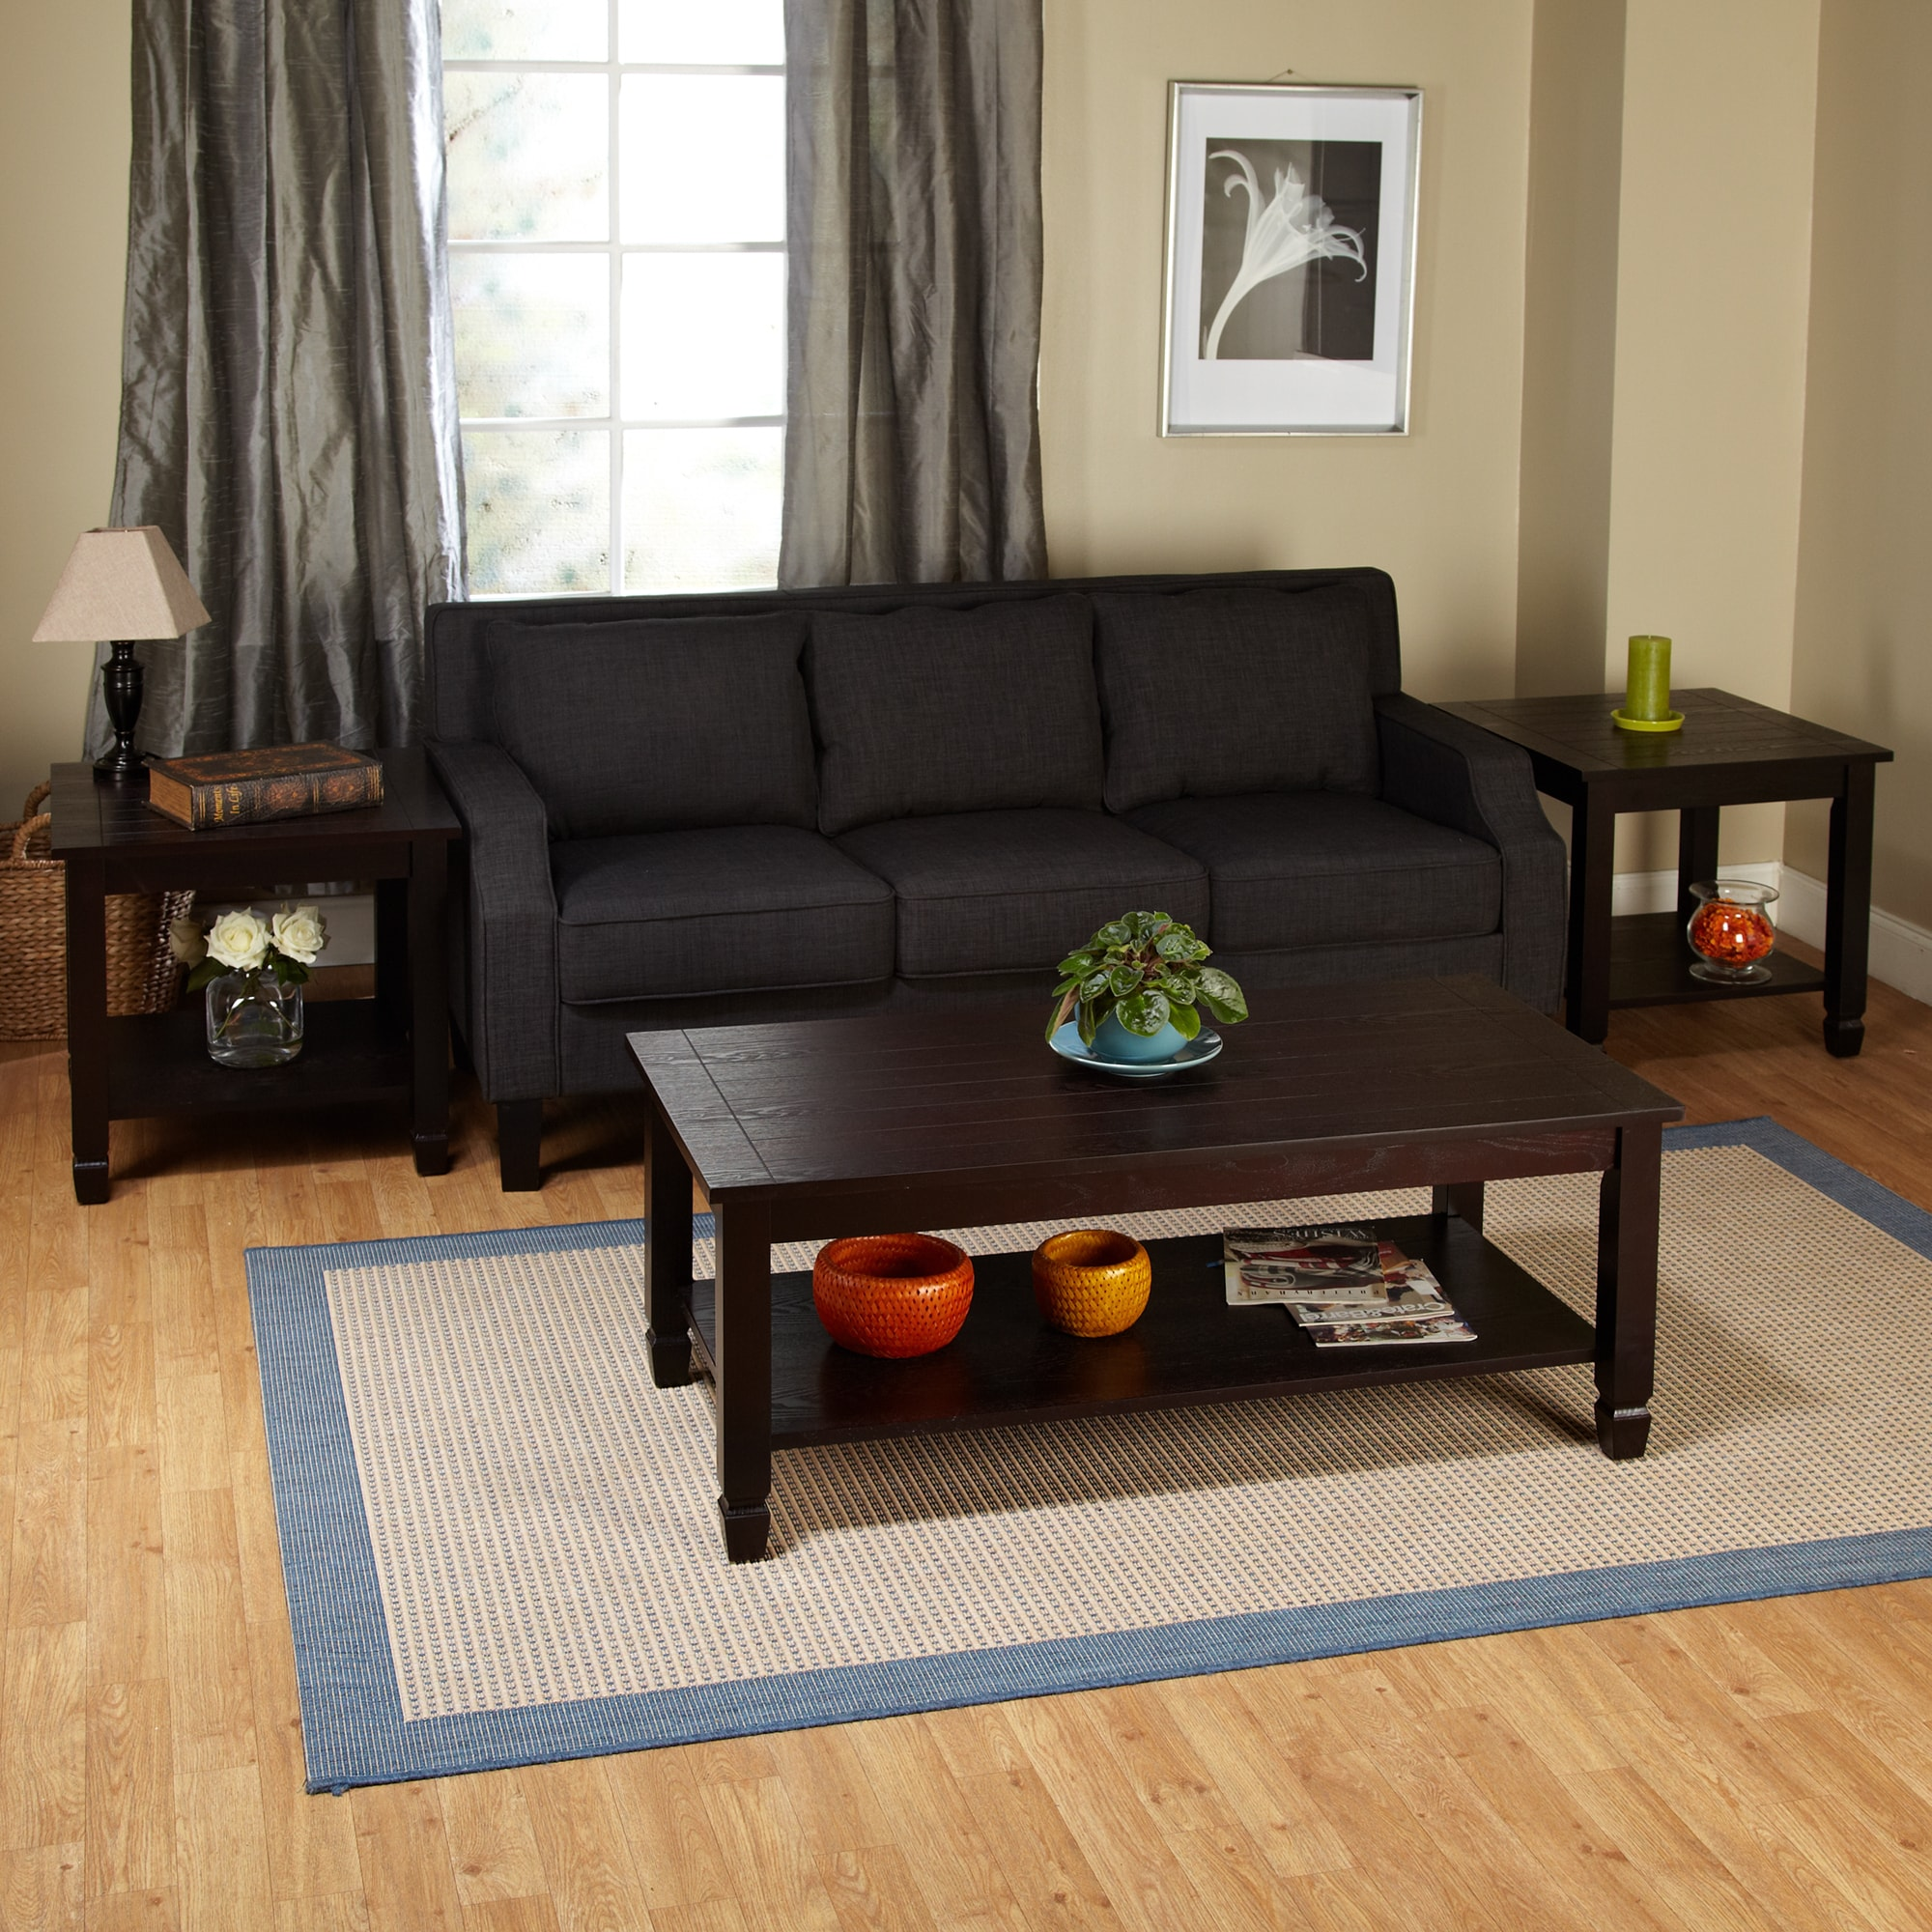 room pertaining small table decor dark to living brown coffee with wood best